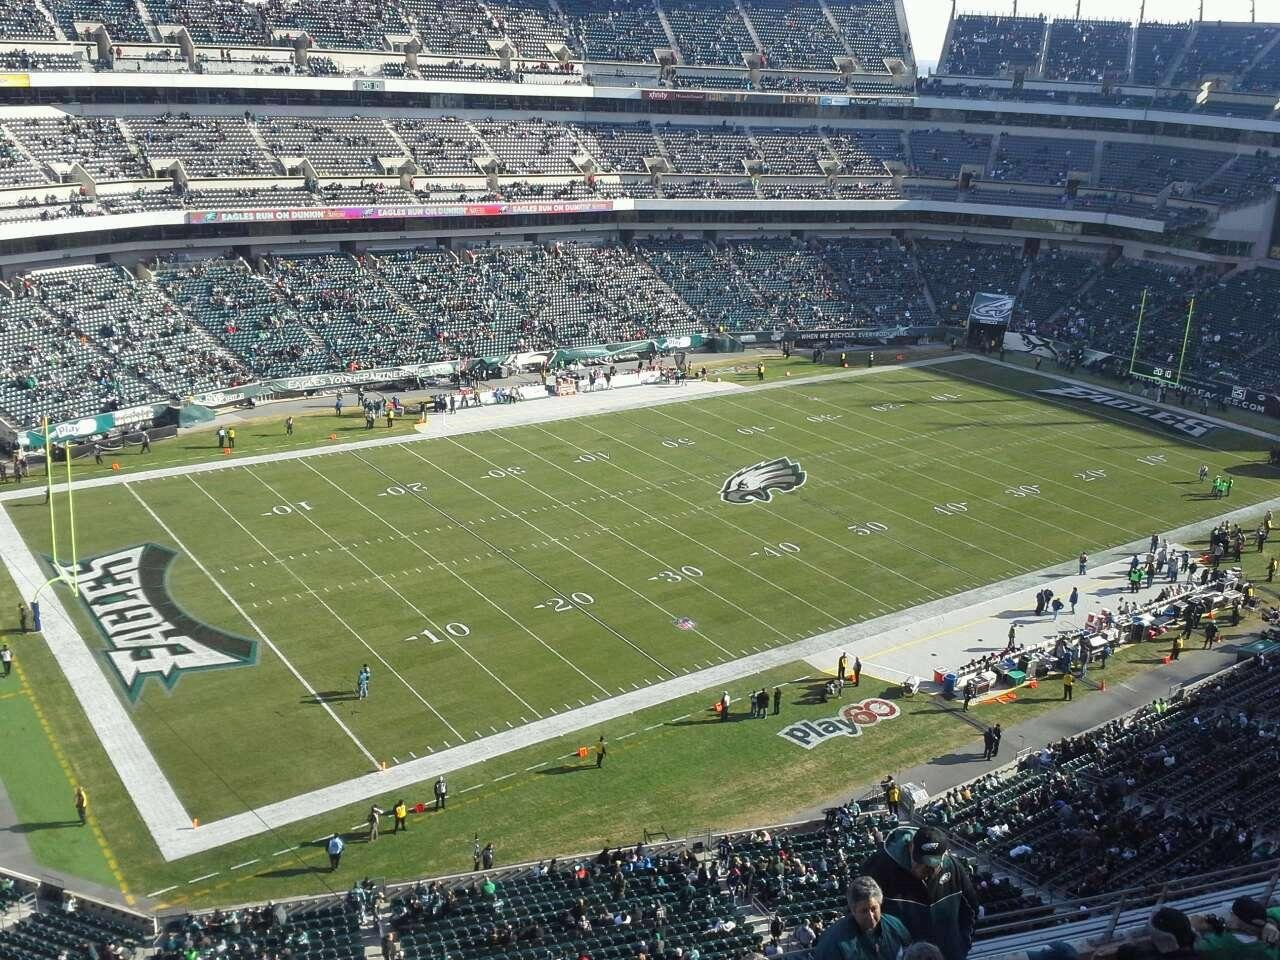 Lincoln Financial Field Section 240 Row 7 Seat 10